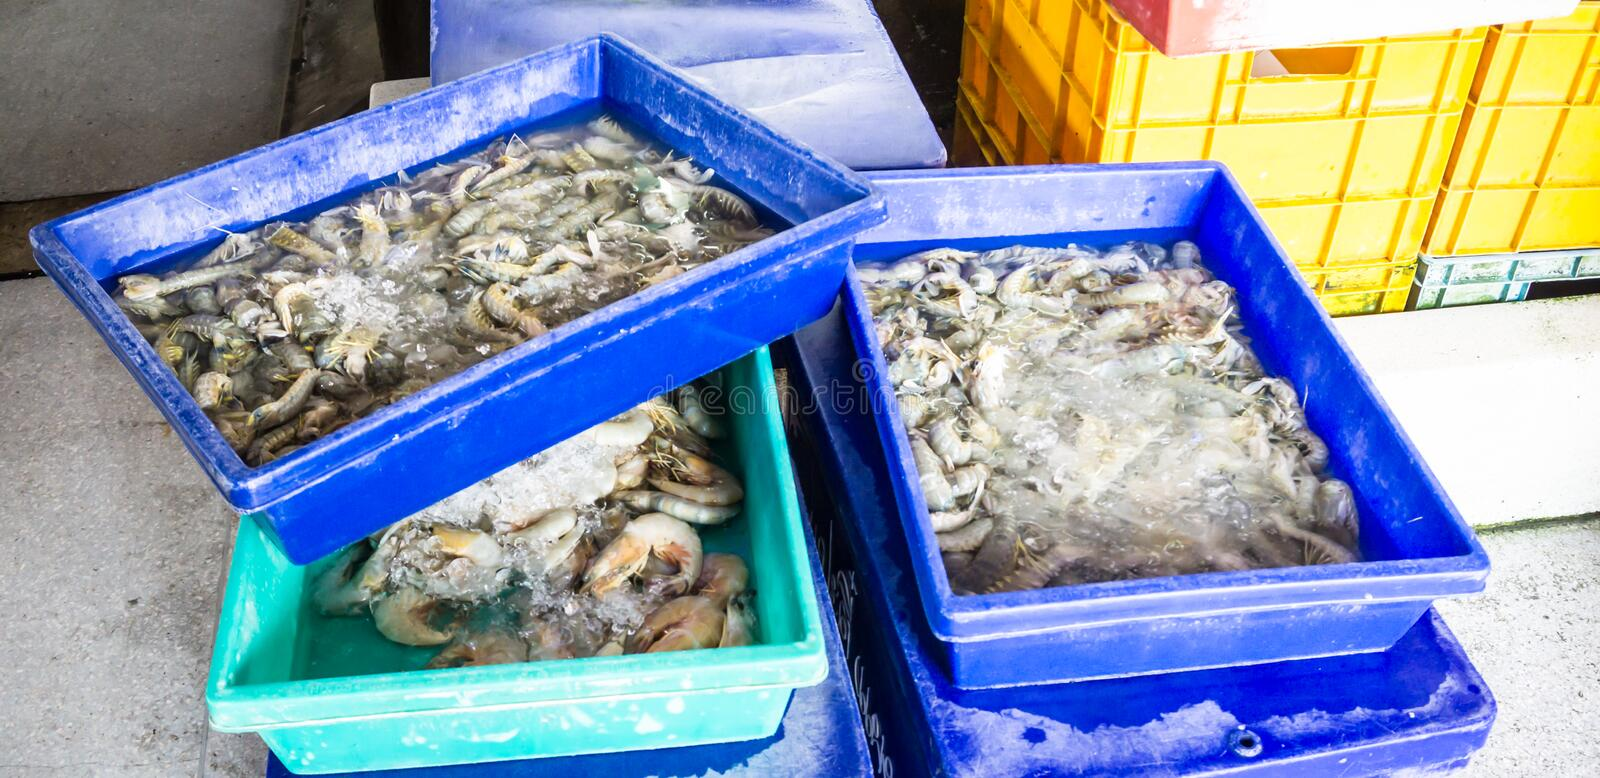 Mantis shrimps and tiger prawn in seafood market stock photos